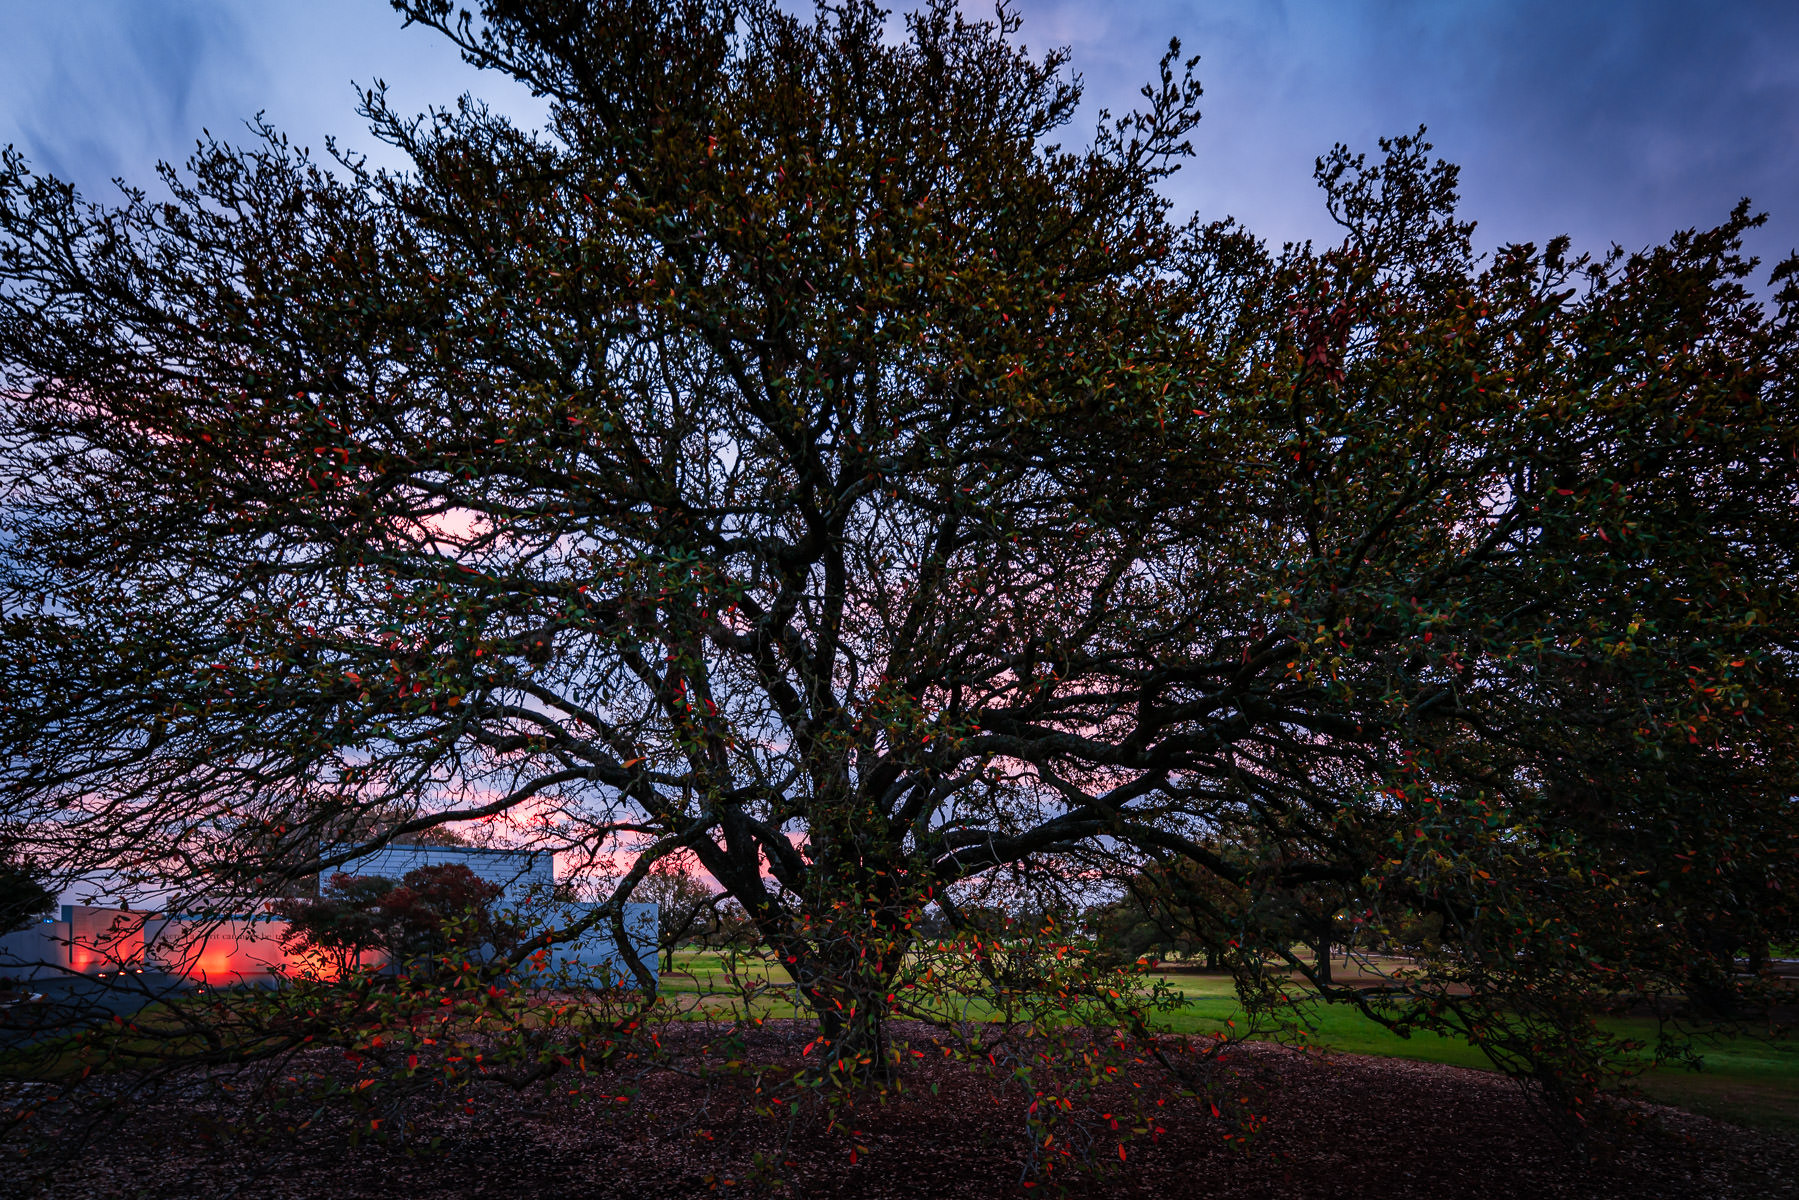 The first light of day falls on a tree at Texas A&M University.